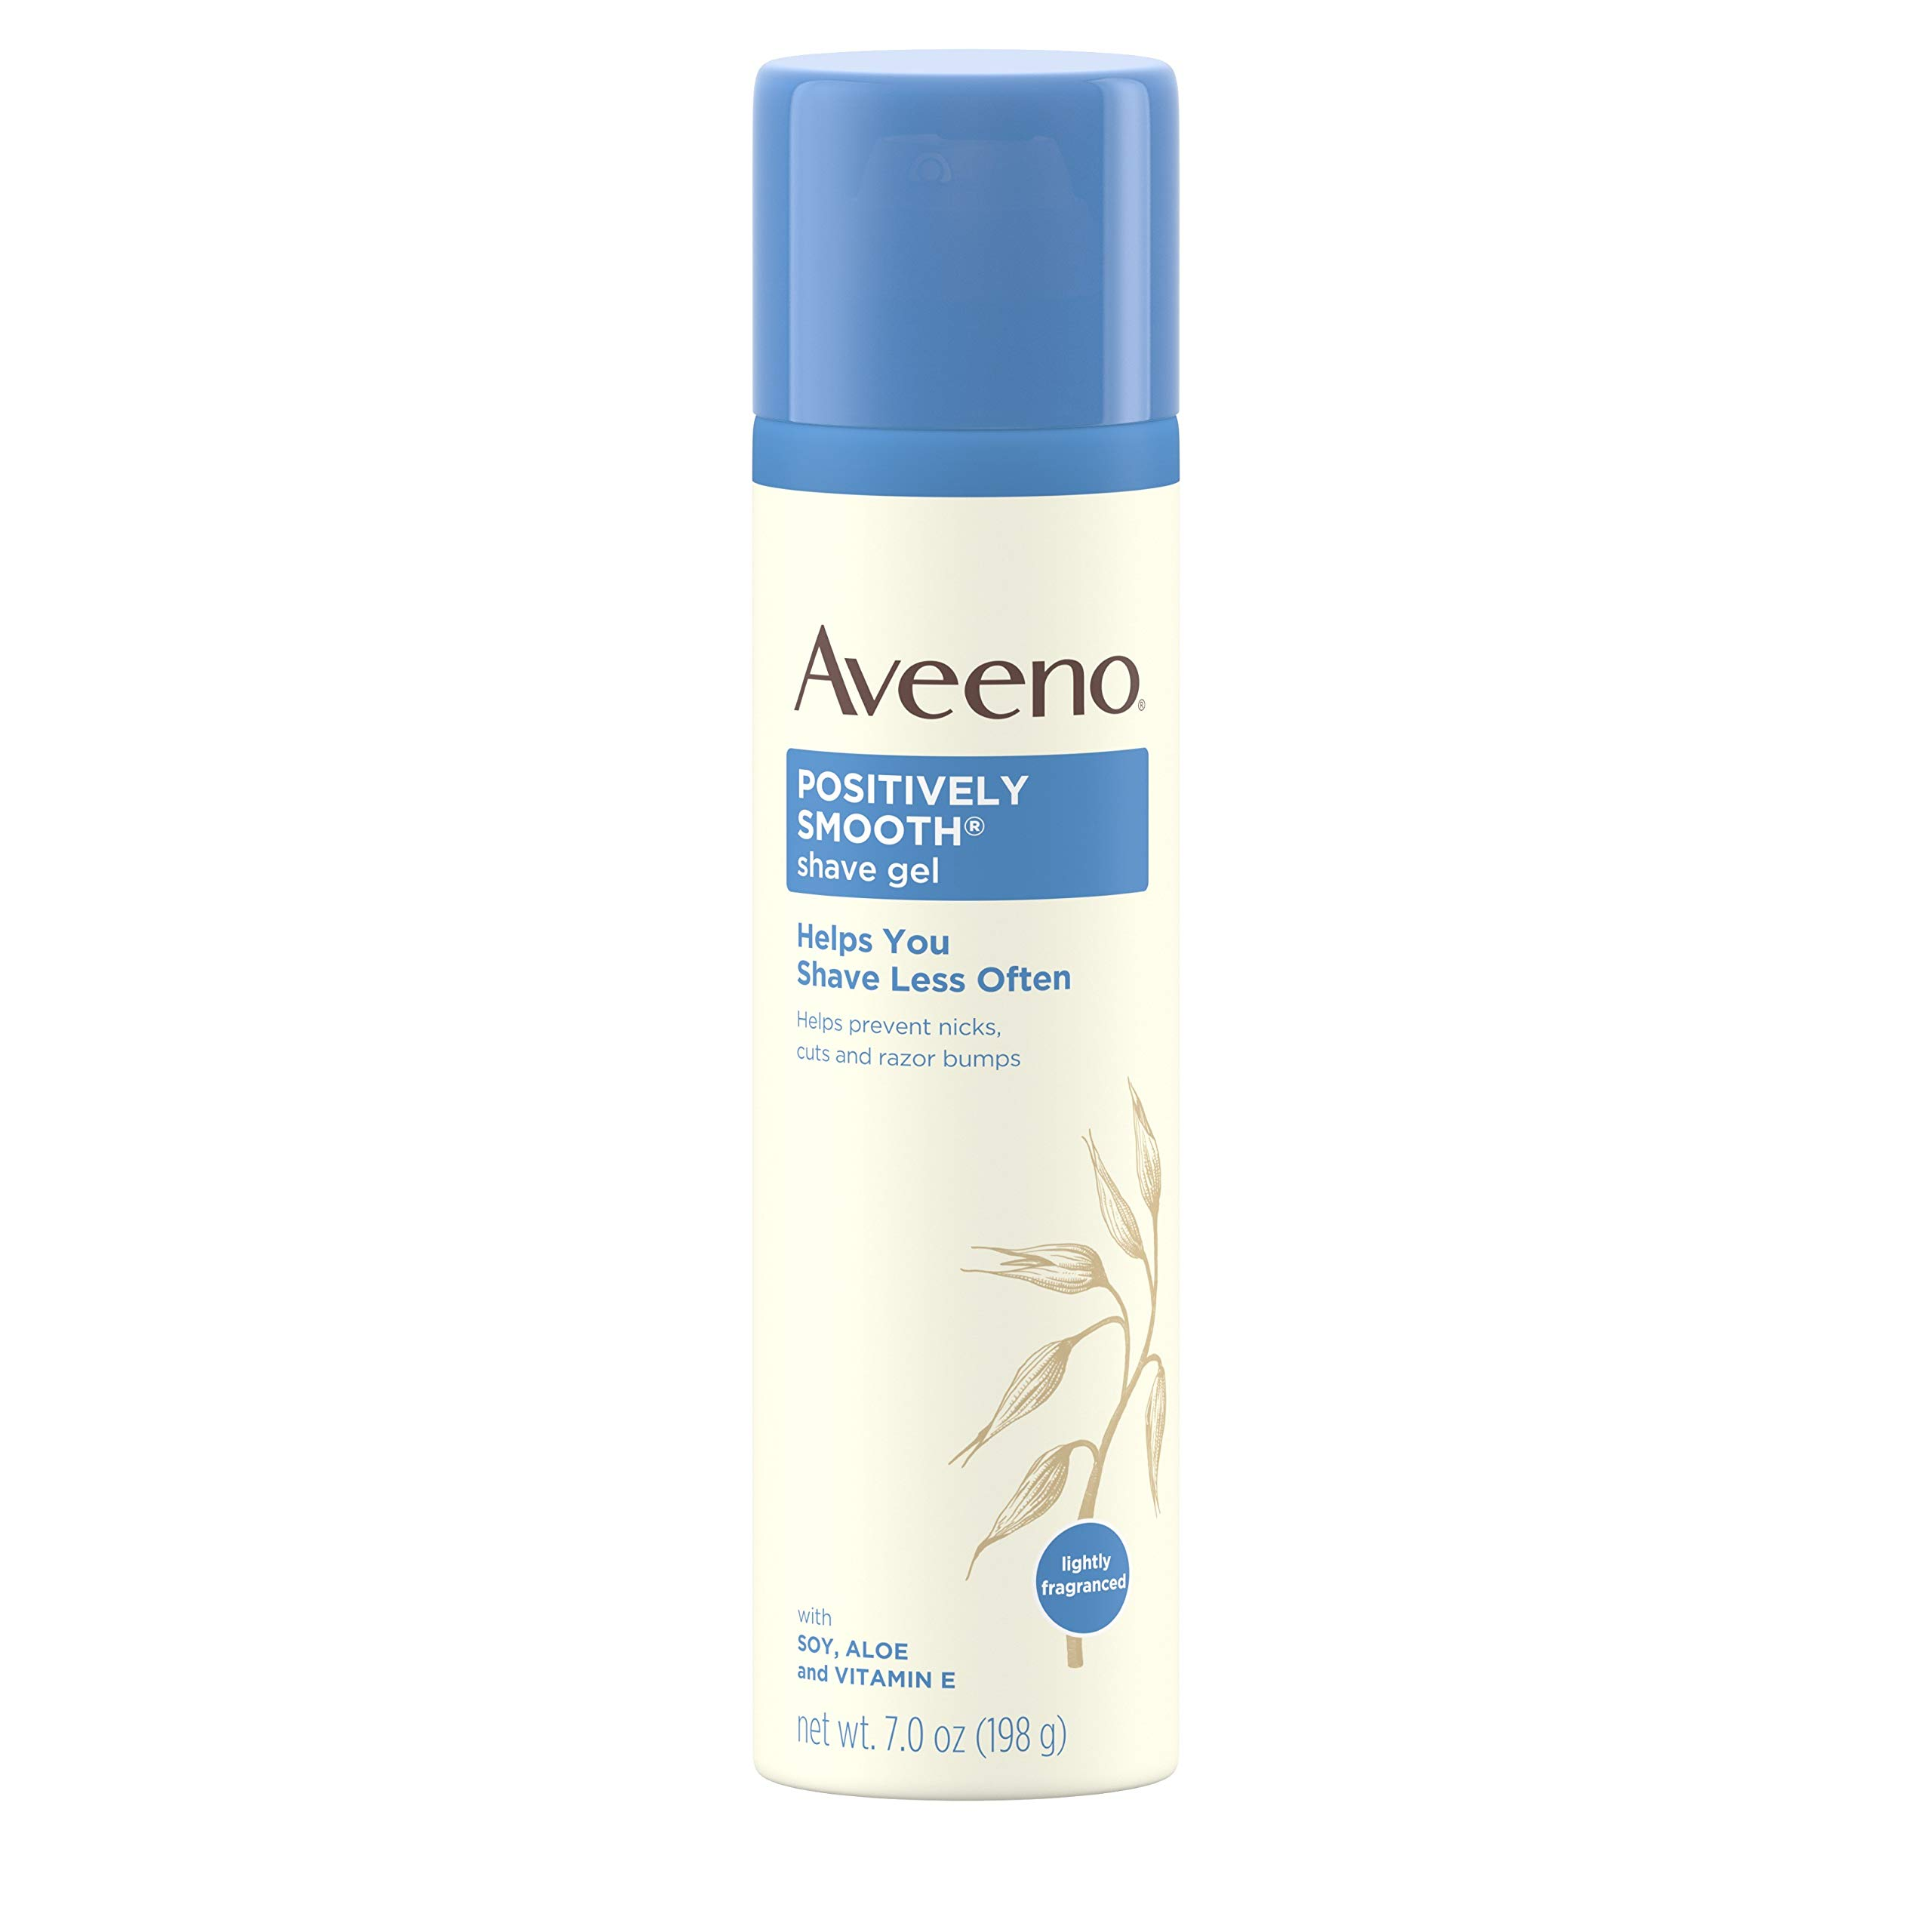 Aveeno Positively Smooth Moisturizing Shave Gel with Soy, Aloe, and Vitamin E to help Prevent Nicks, Cuts and Razor Bumps, Lightly Fragranced, 7 oz